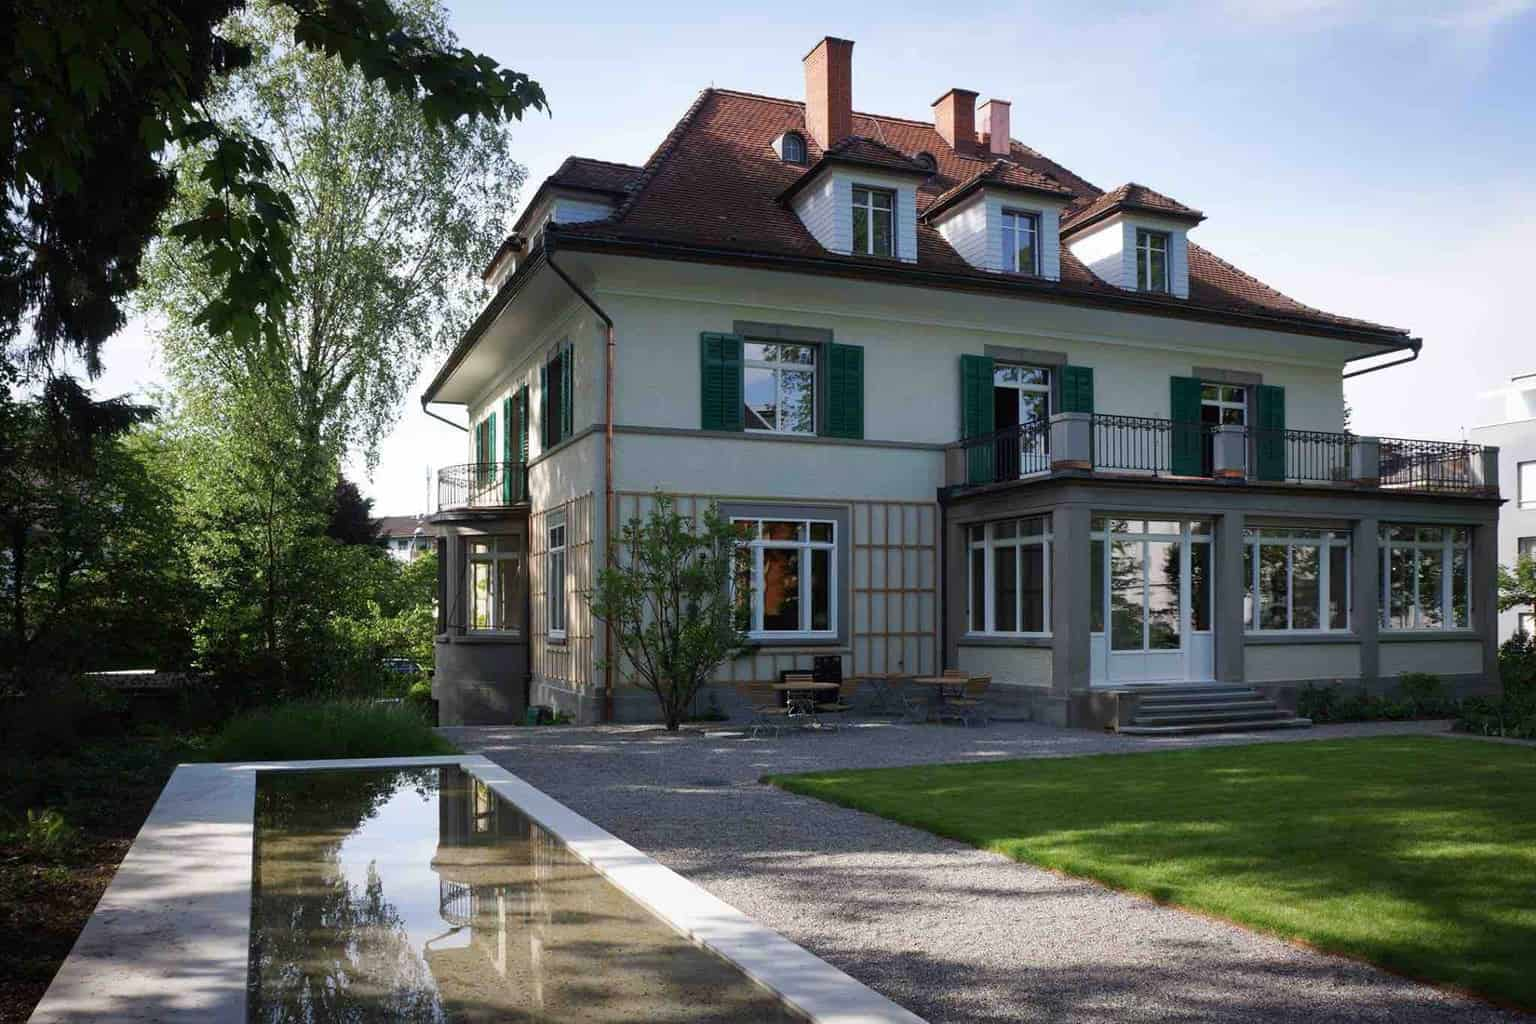 Sophisticated B&B at Signau Haus and Garden